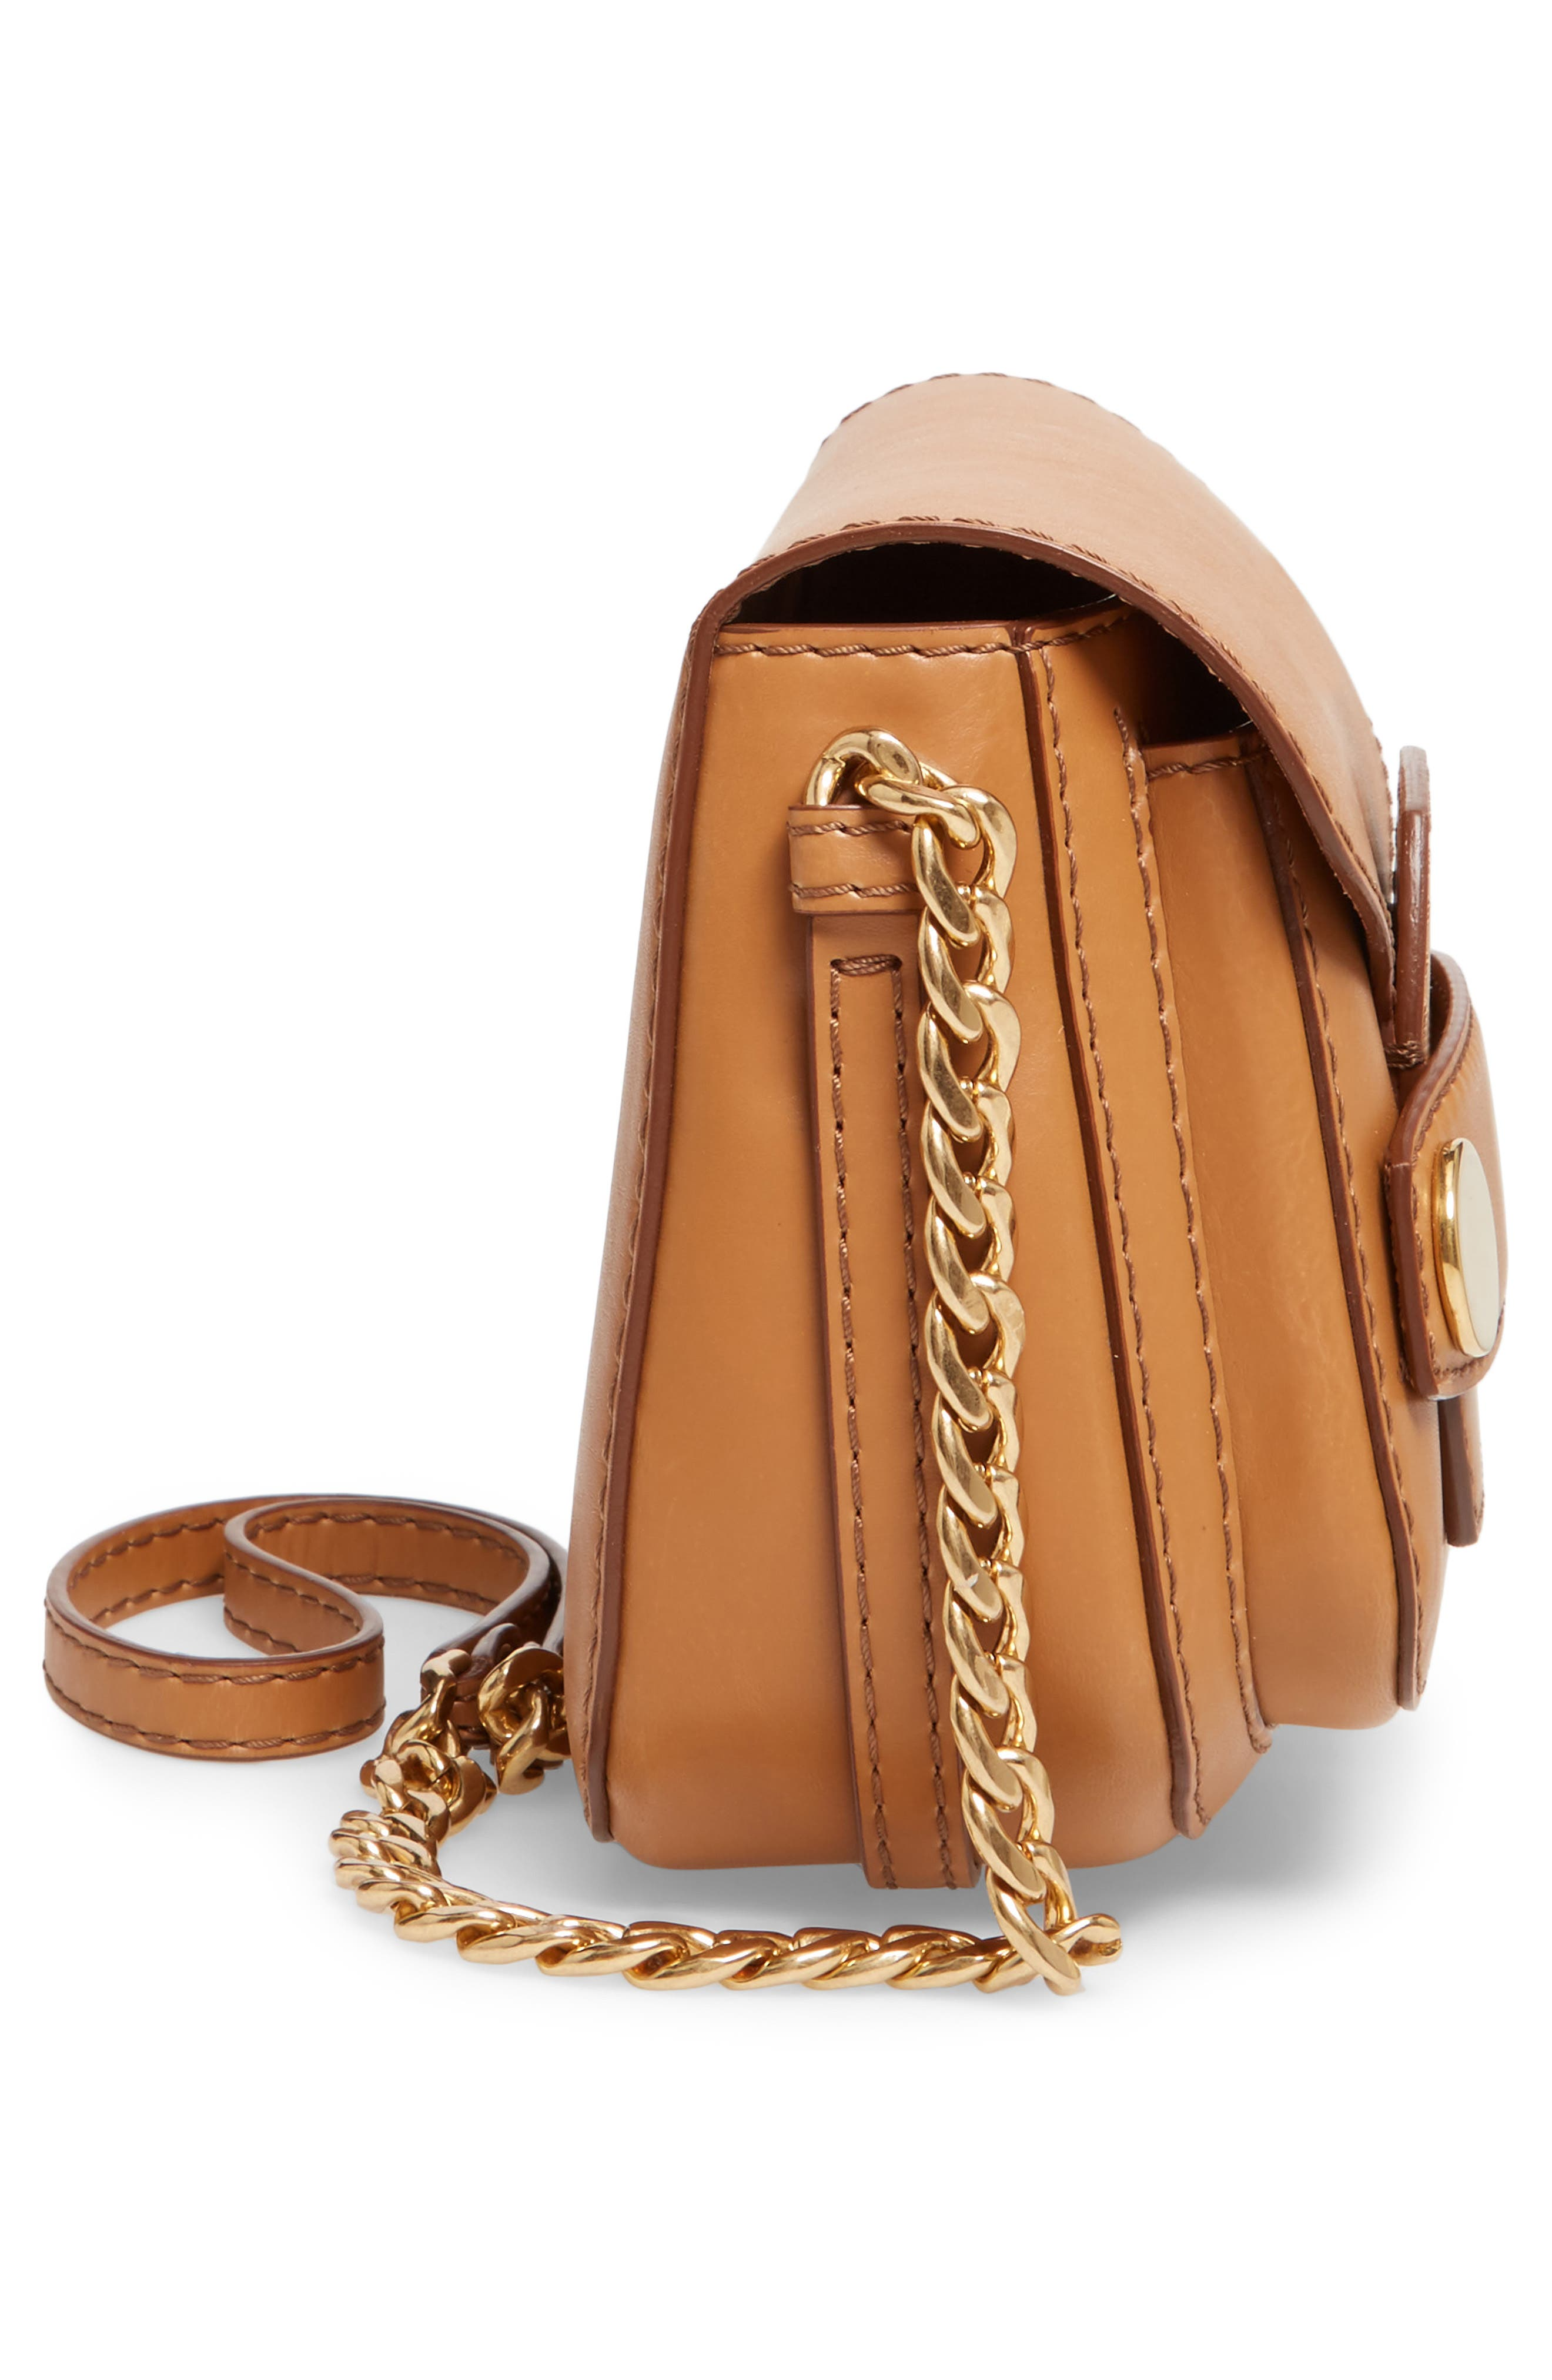 Textured Faux Leather Crossbody Bag,                             Alternate thumbnail 5, color,                             294